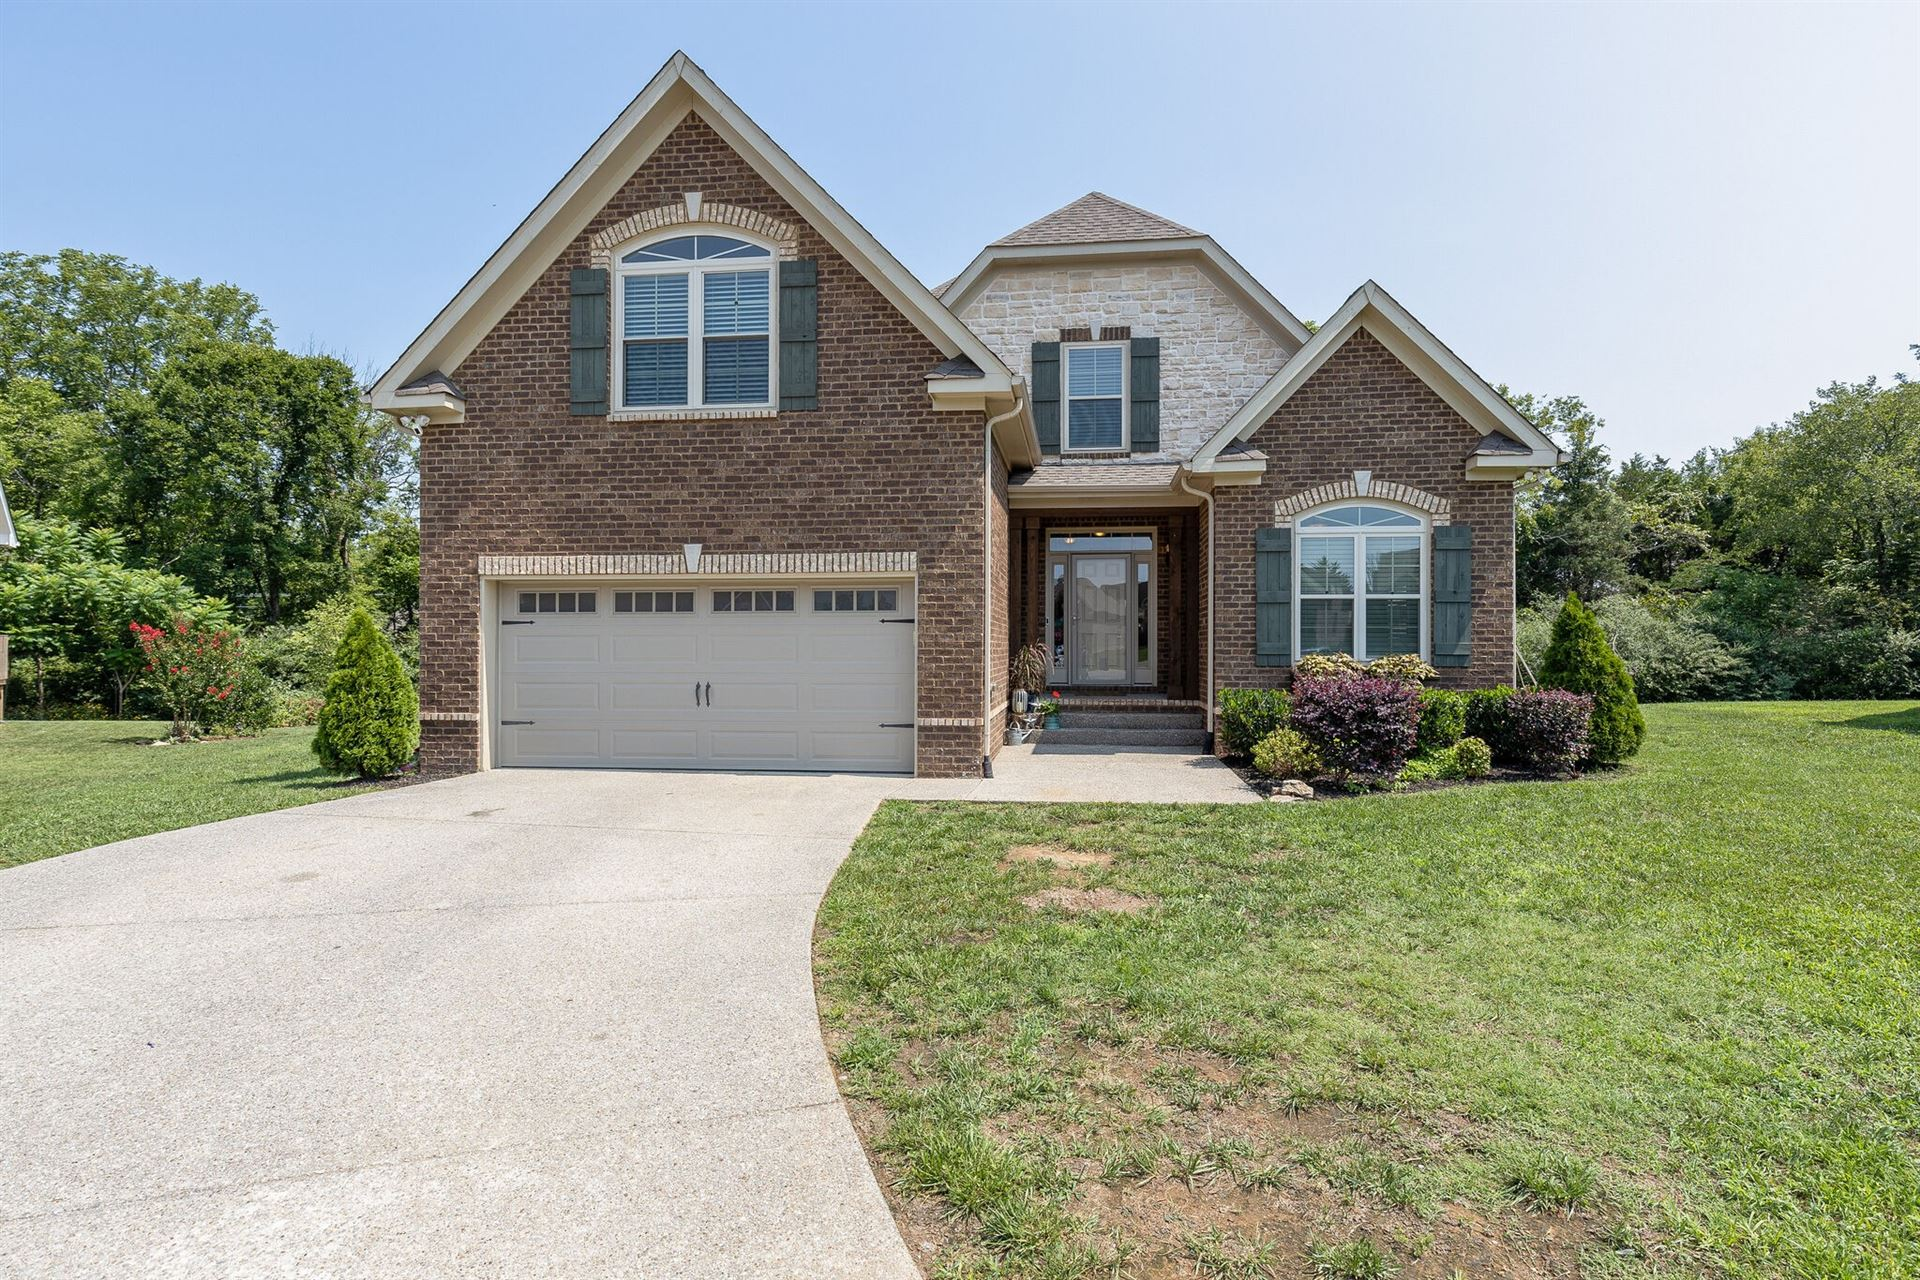 Photo of 4004 Red Brick Ct, Spring Hill, TN 37174 (MLS # 2276595)